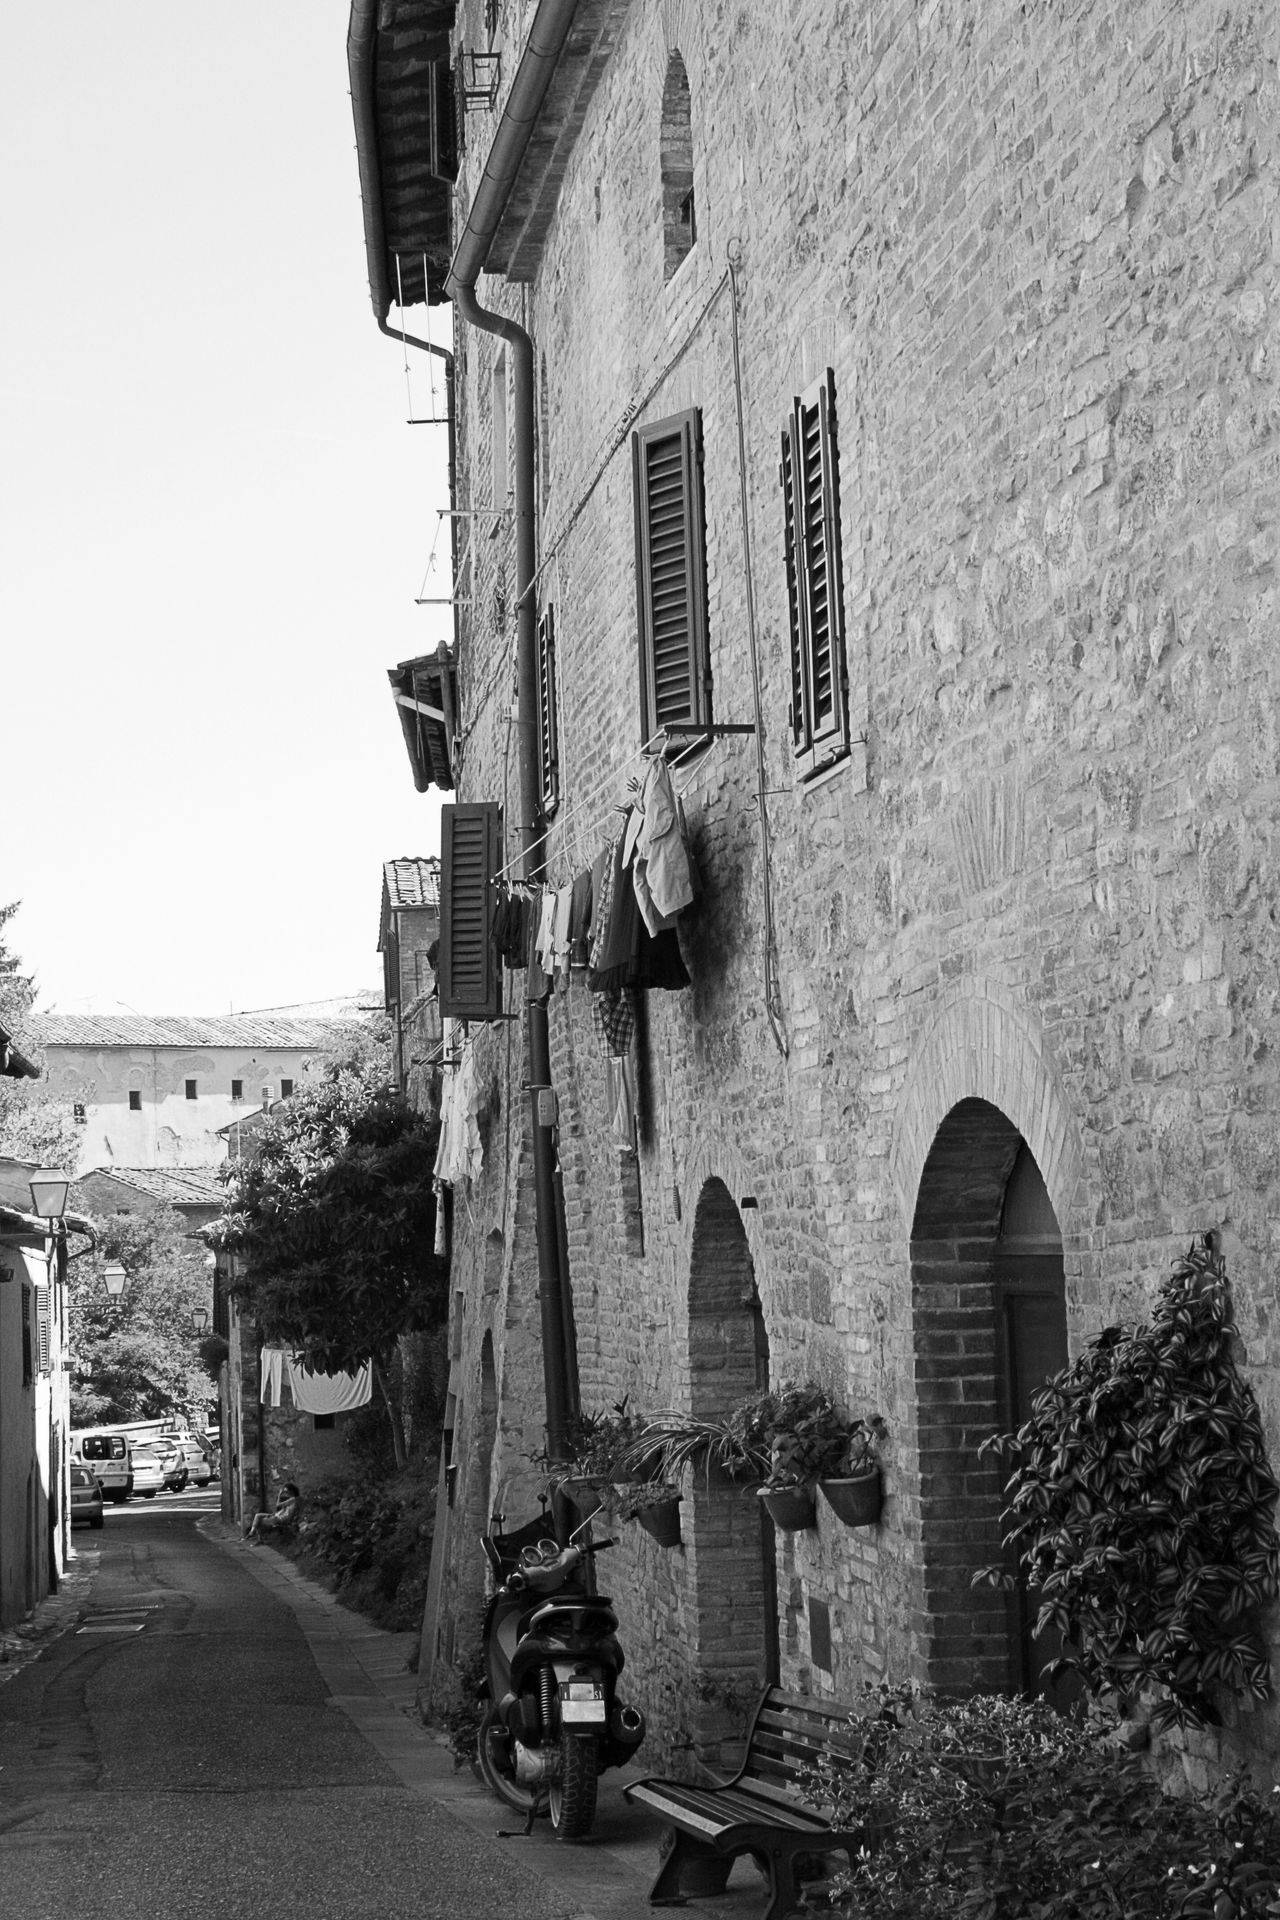 Architecture Building Exterior Built Structure City Day Italy No People Outdoors San Gimignano Scooter Sky Tuscany Vespa